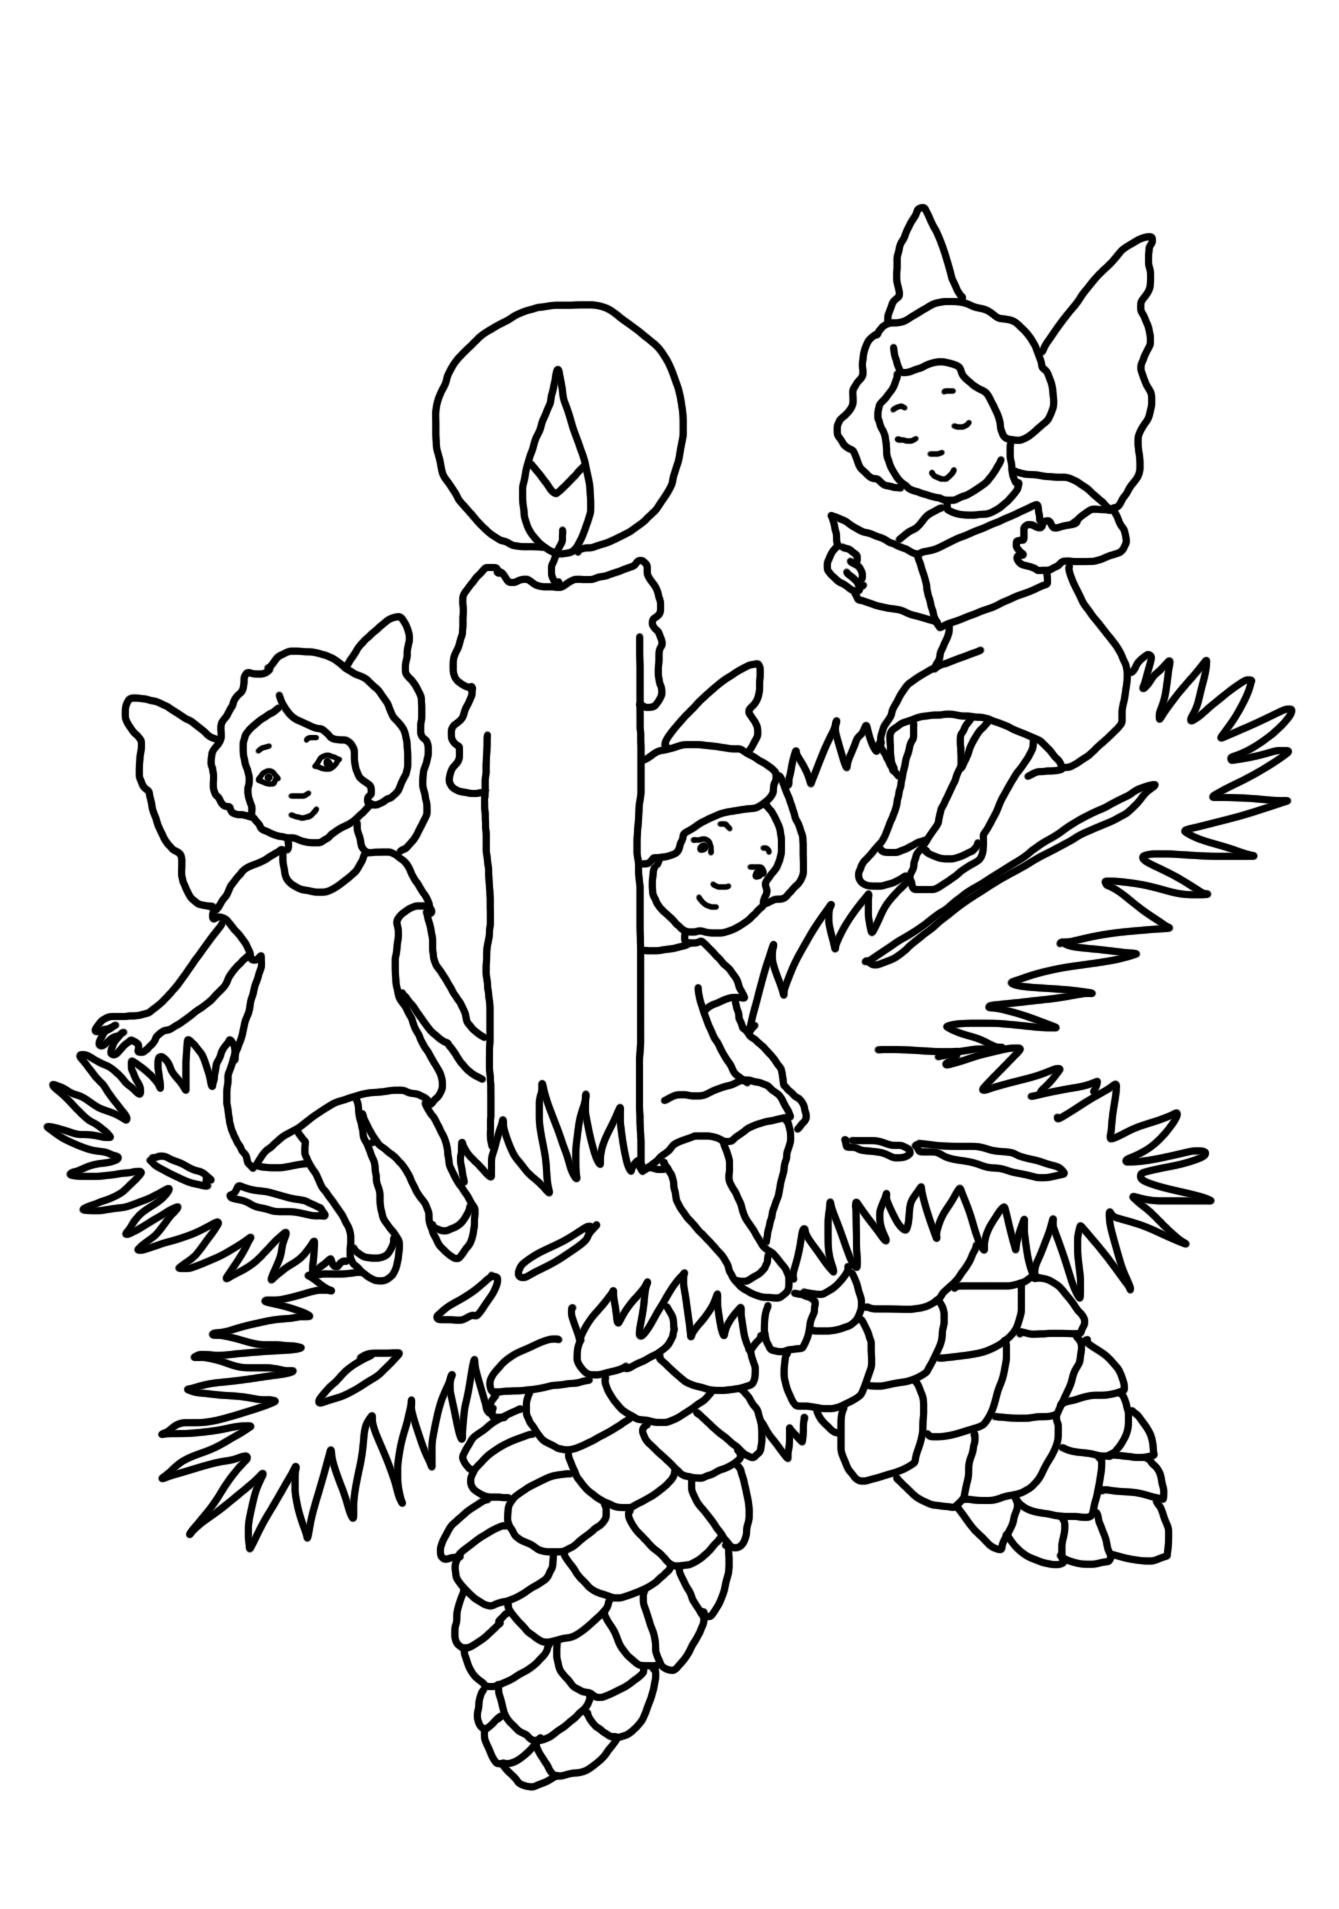 istmas coloring pages - photo#8